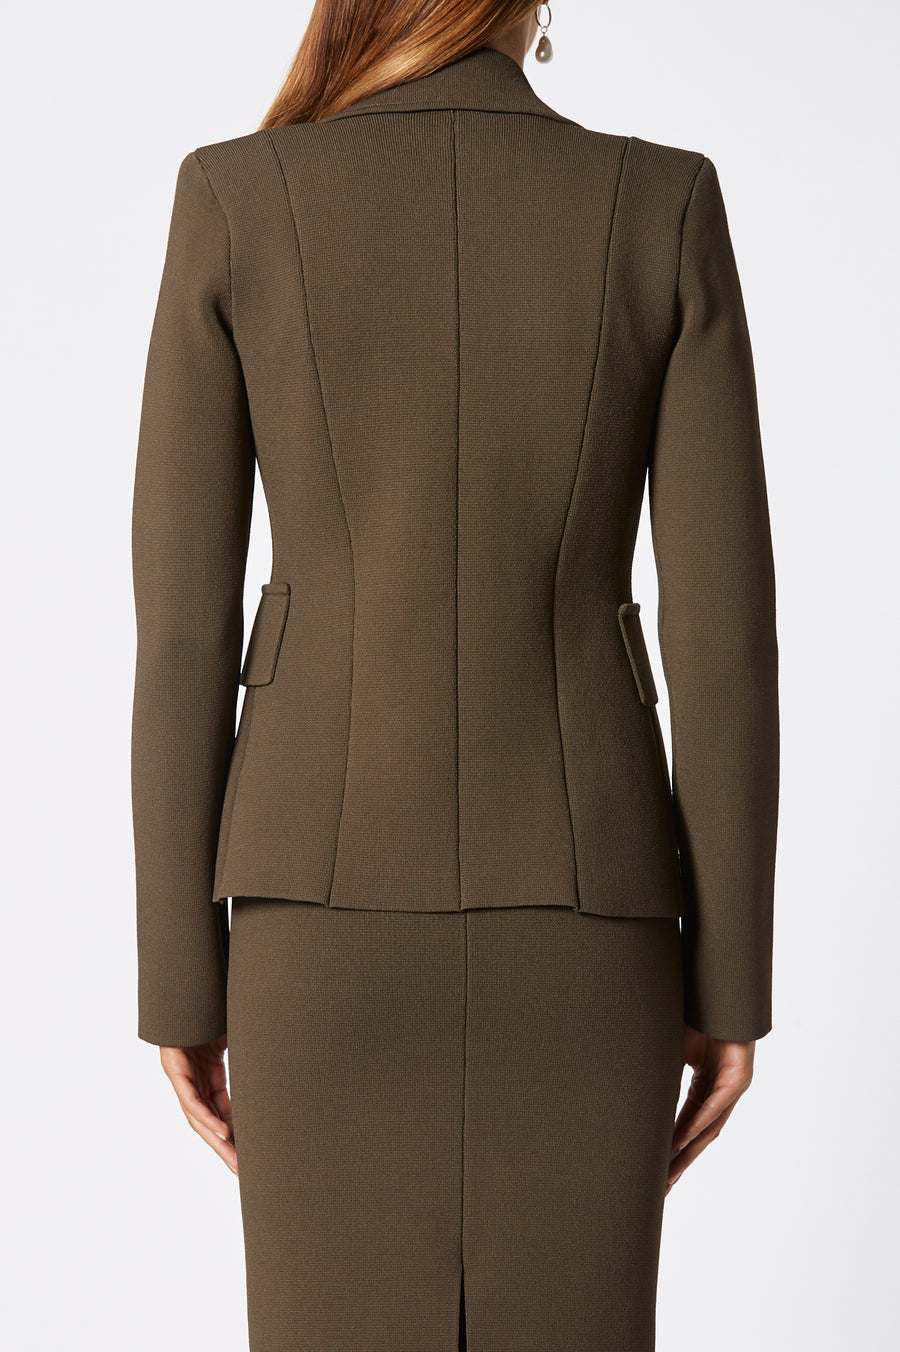 Crepe Knit Tailored Jacket, sharp lapels, shoulder pads, double breasted silhouette, Color Cafe